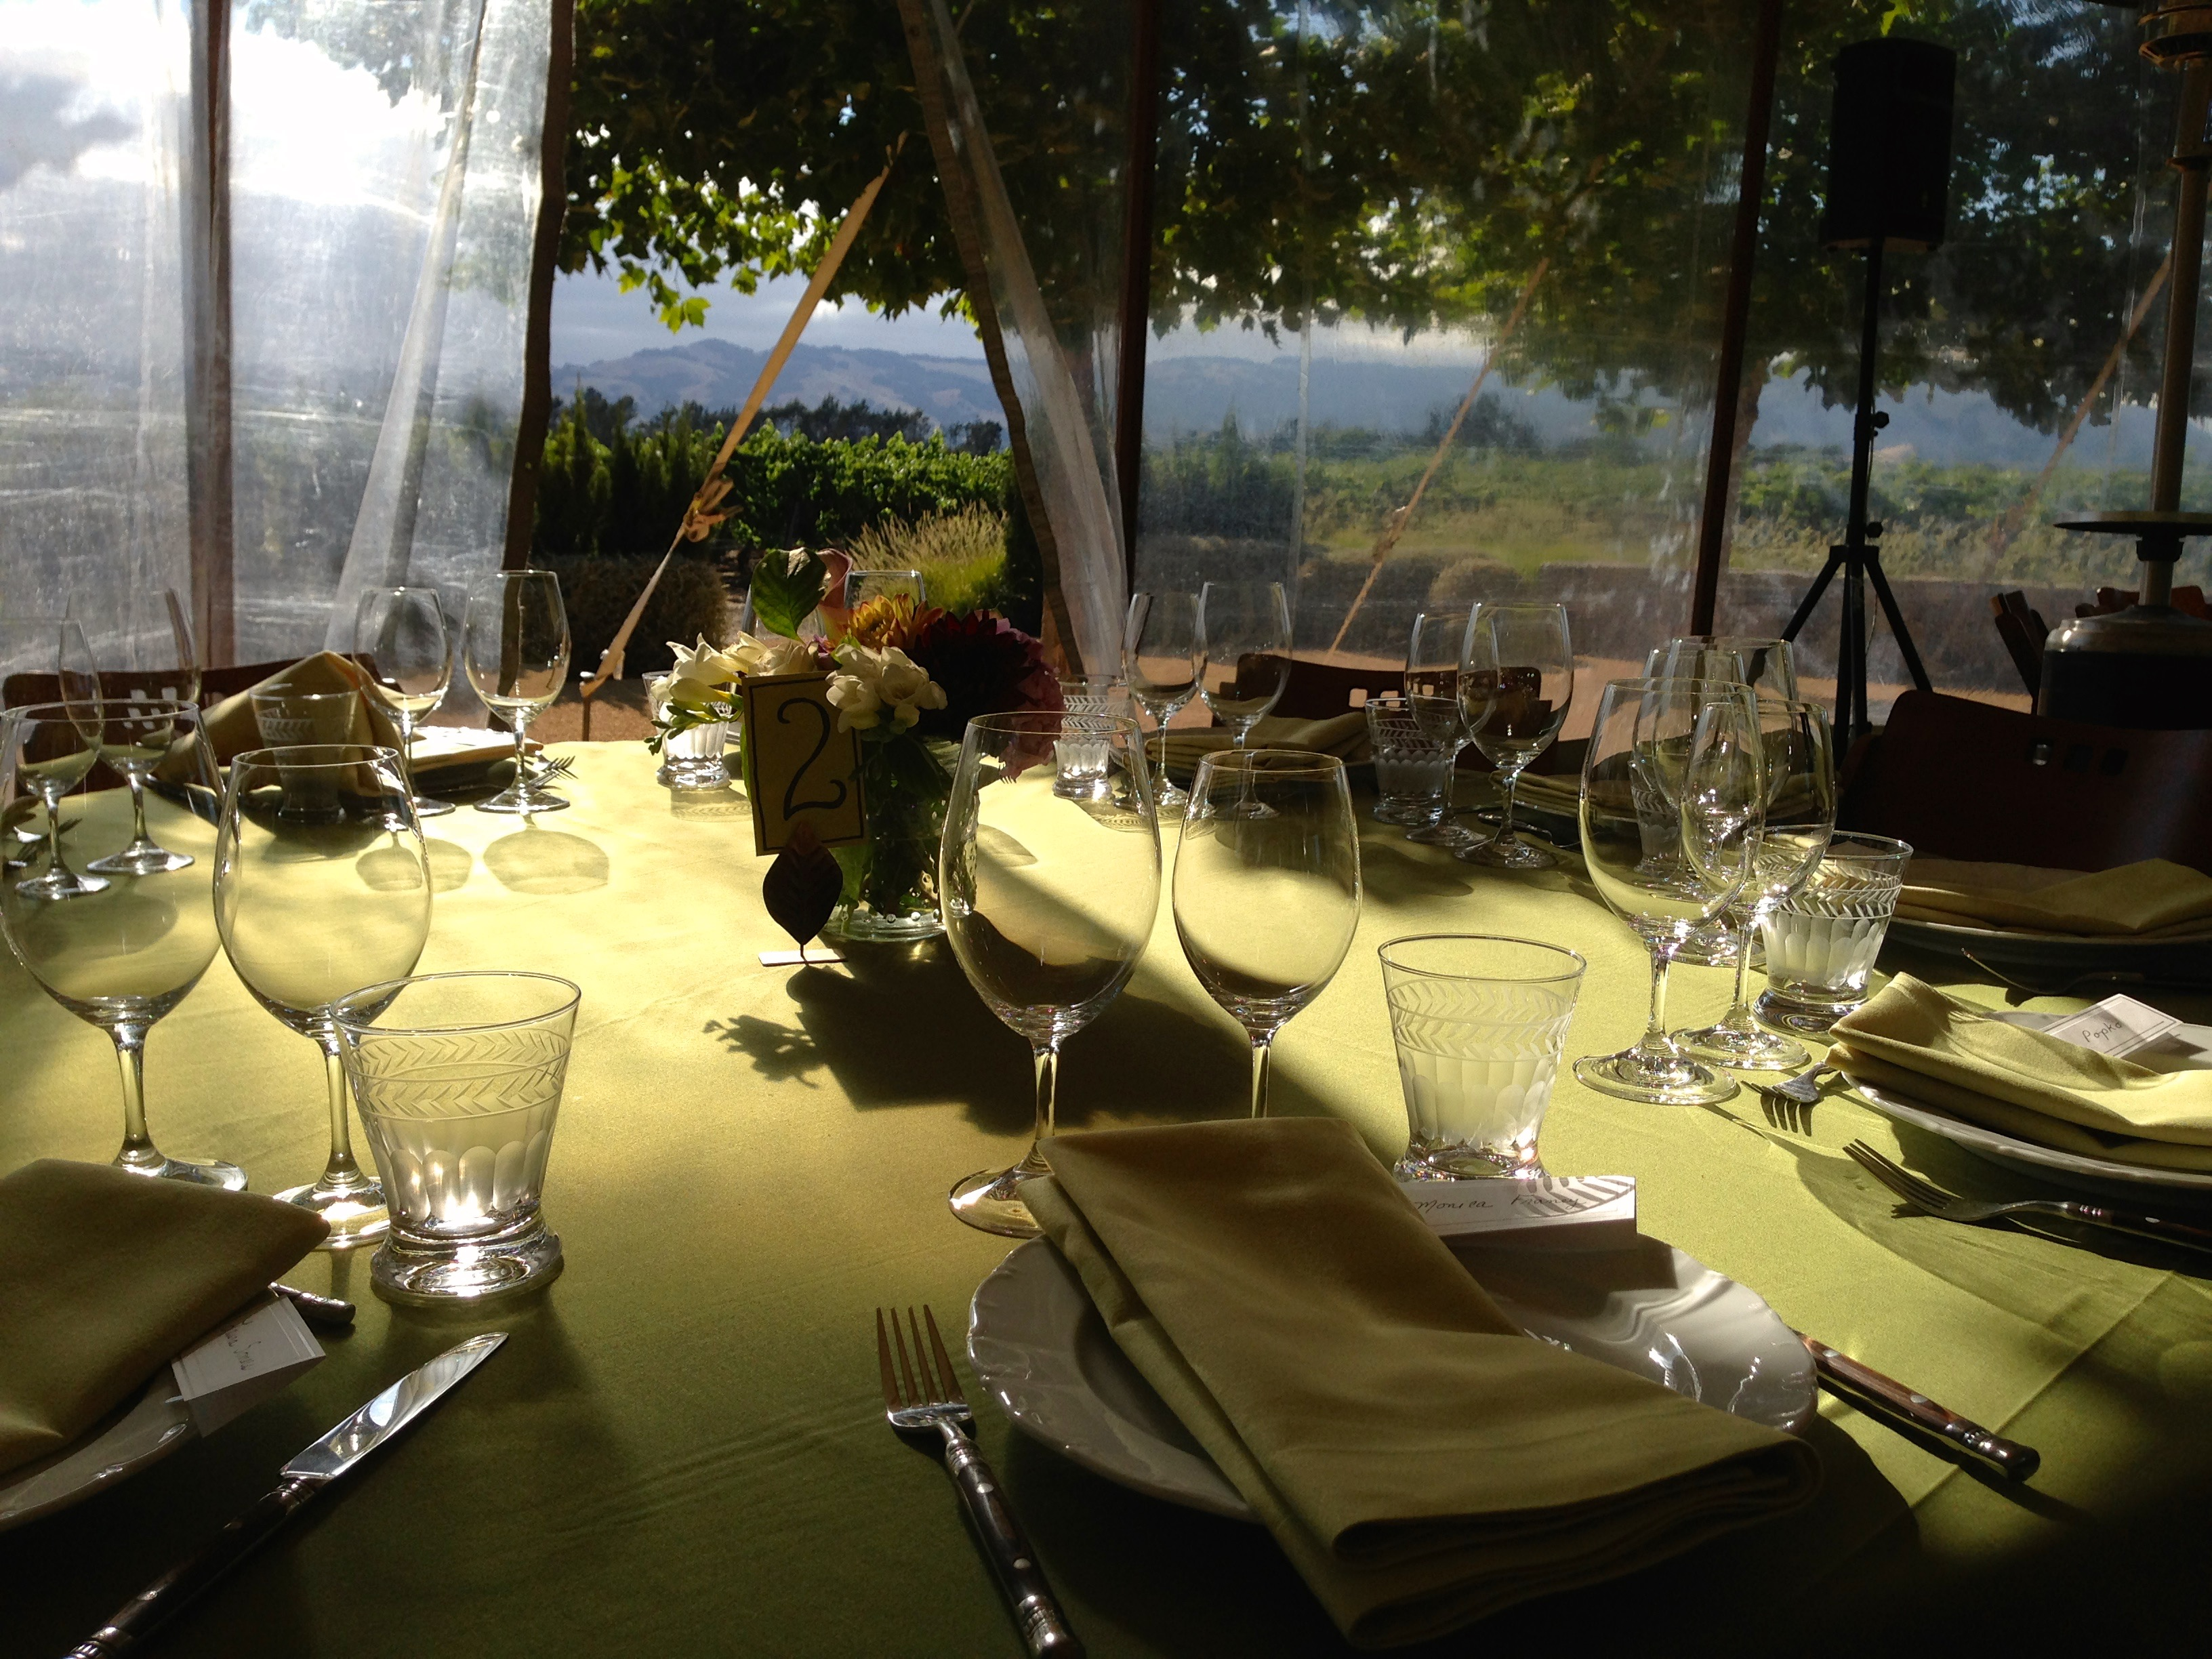 Sangiacomo Winery Sunlit Tent